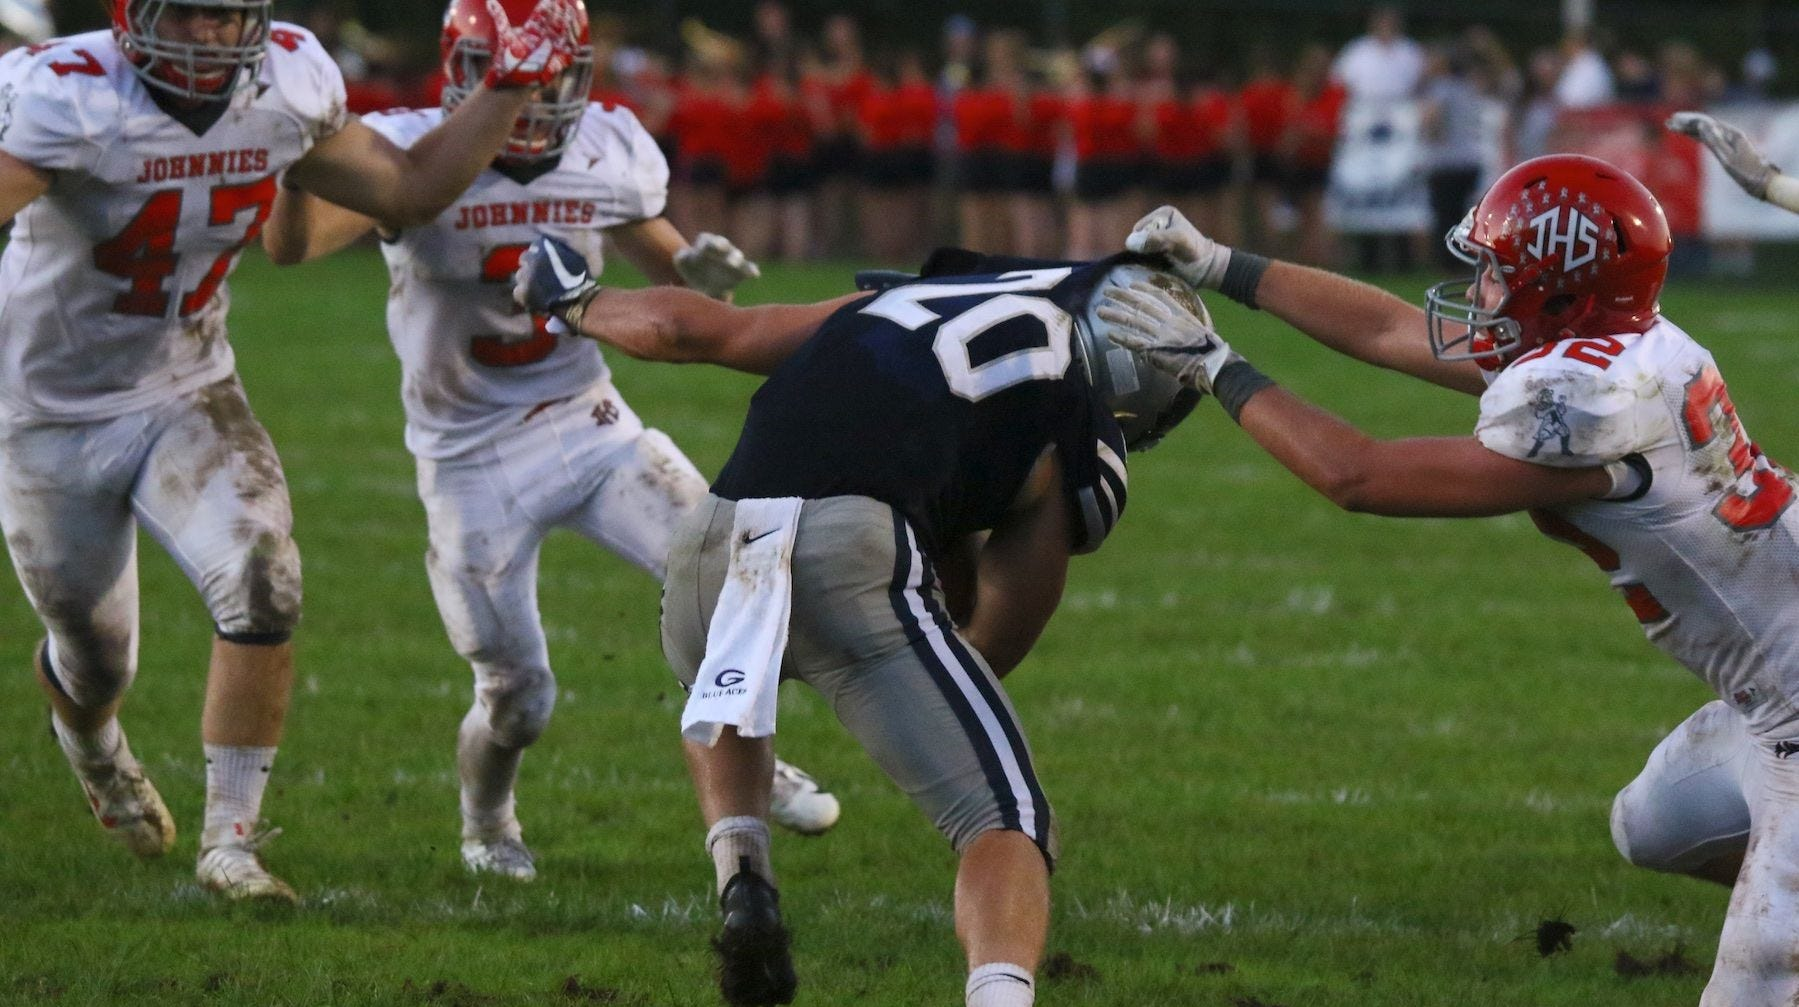 Mature sophomore Lusk rare two-way player for Johnstown